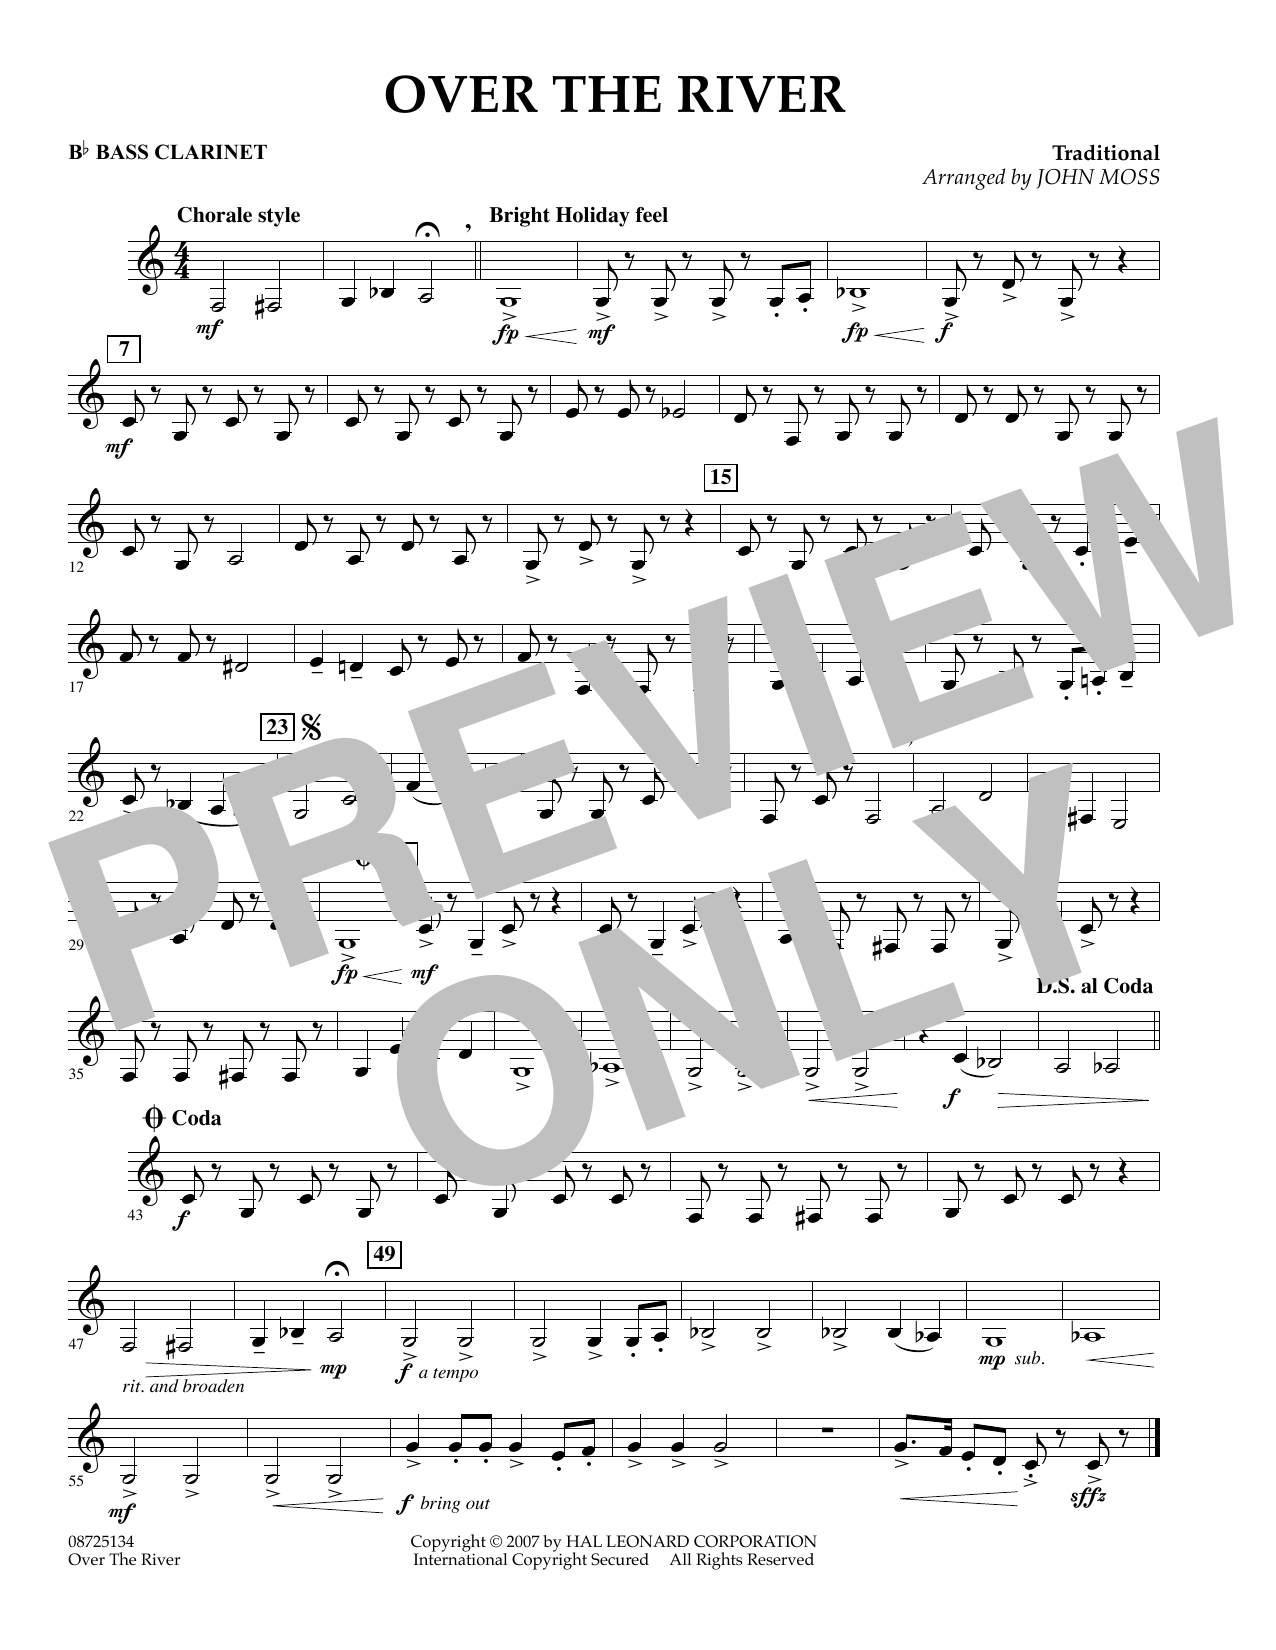 John Moss Over the River - Bb Bass Clarinet sheet music preview music notes and score for Concert Band including 1 page(s)